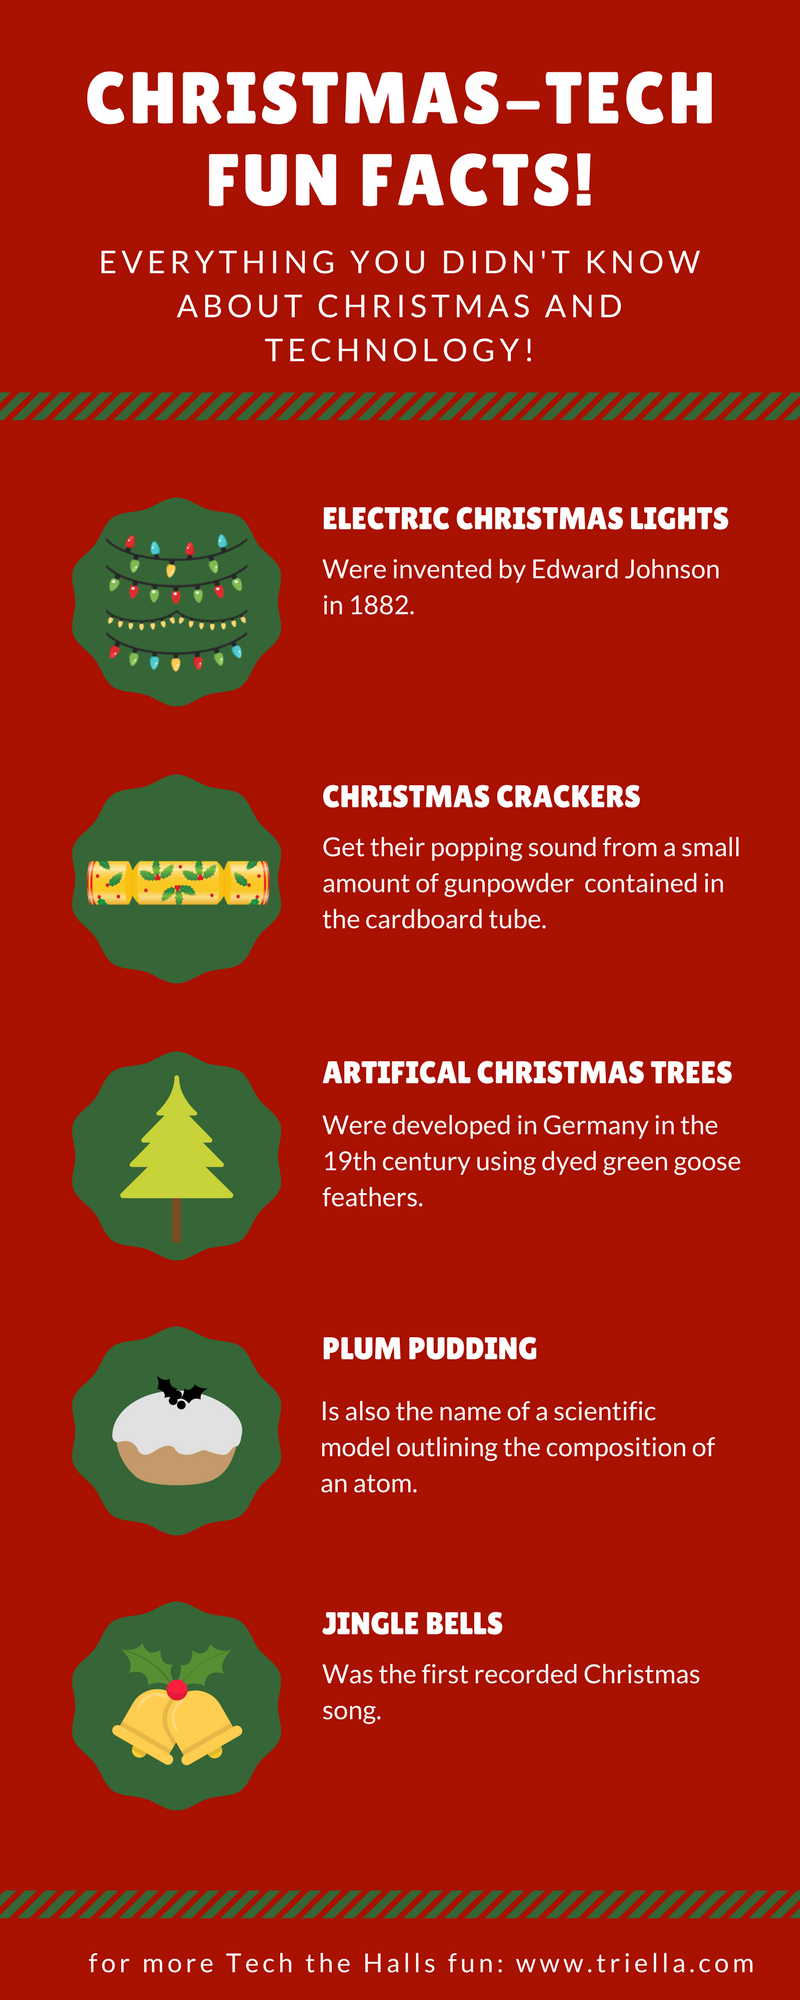 Christmas-Tech Fun Facts